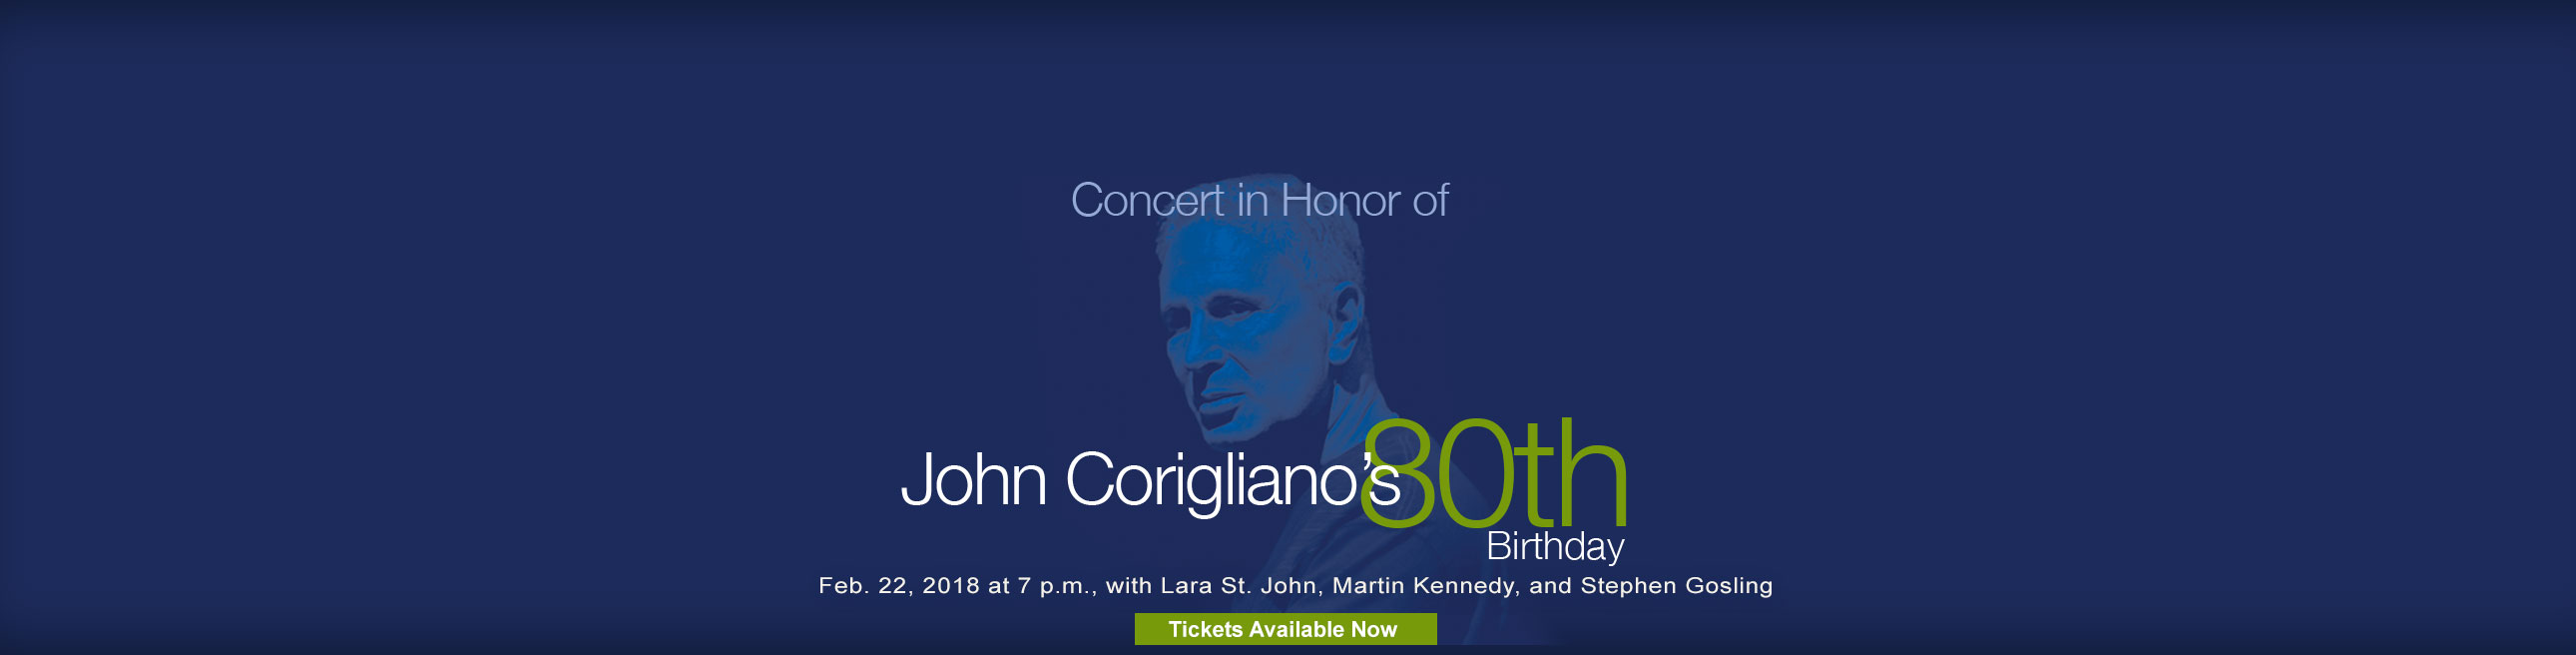 Concert in Honor of John Corigliano's 80th Birthday